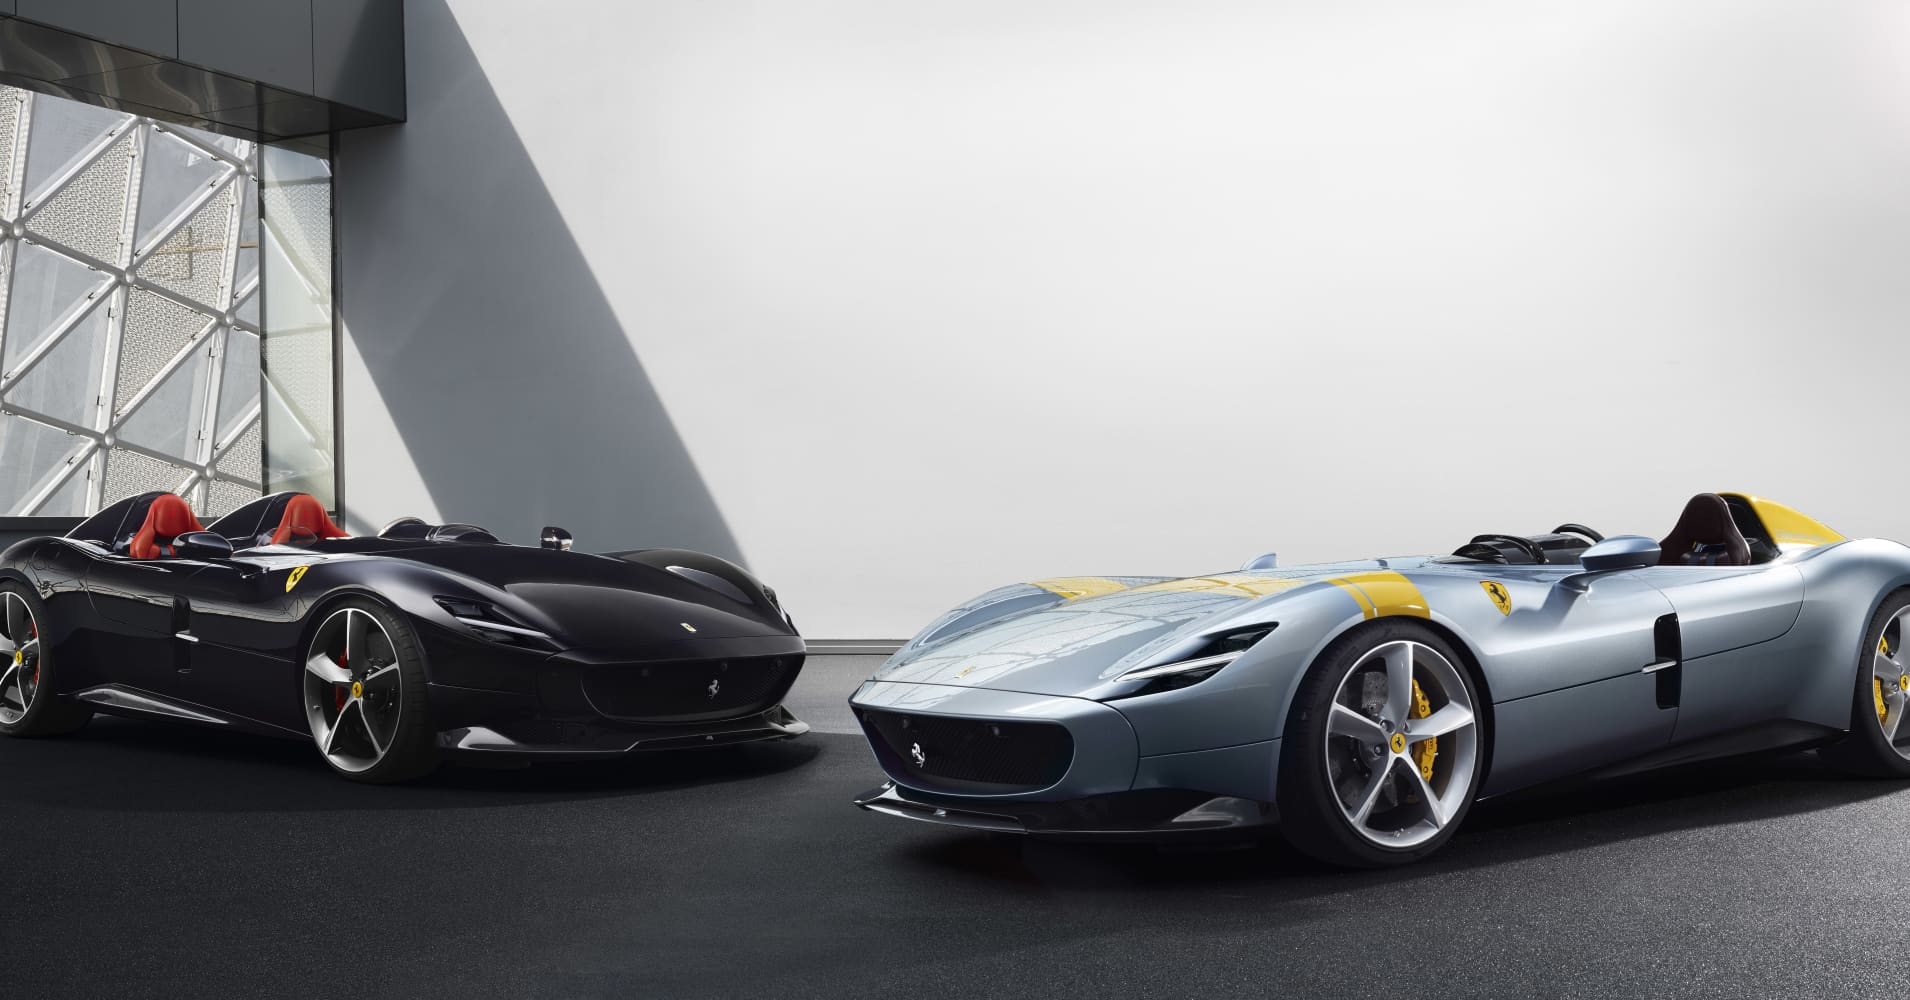 Ferrari unveiled two new car models on September 18 2018. They are titled the Monza SP1 and Monza SP2.